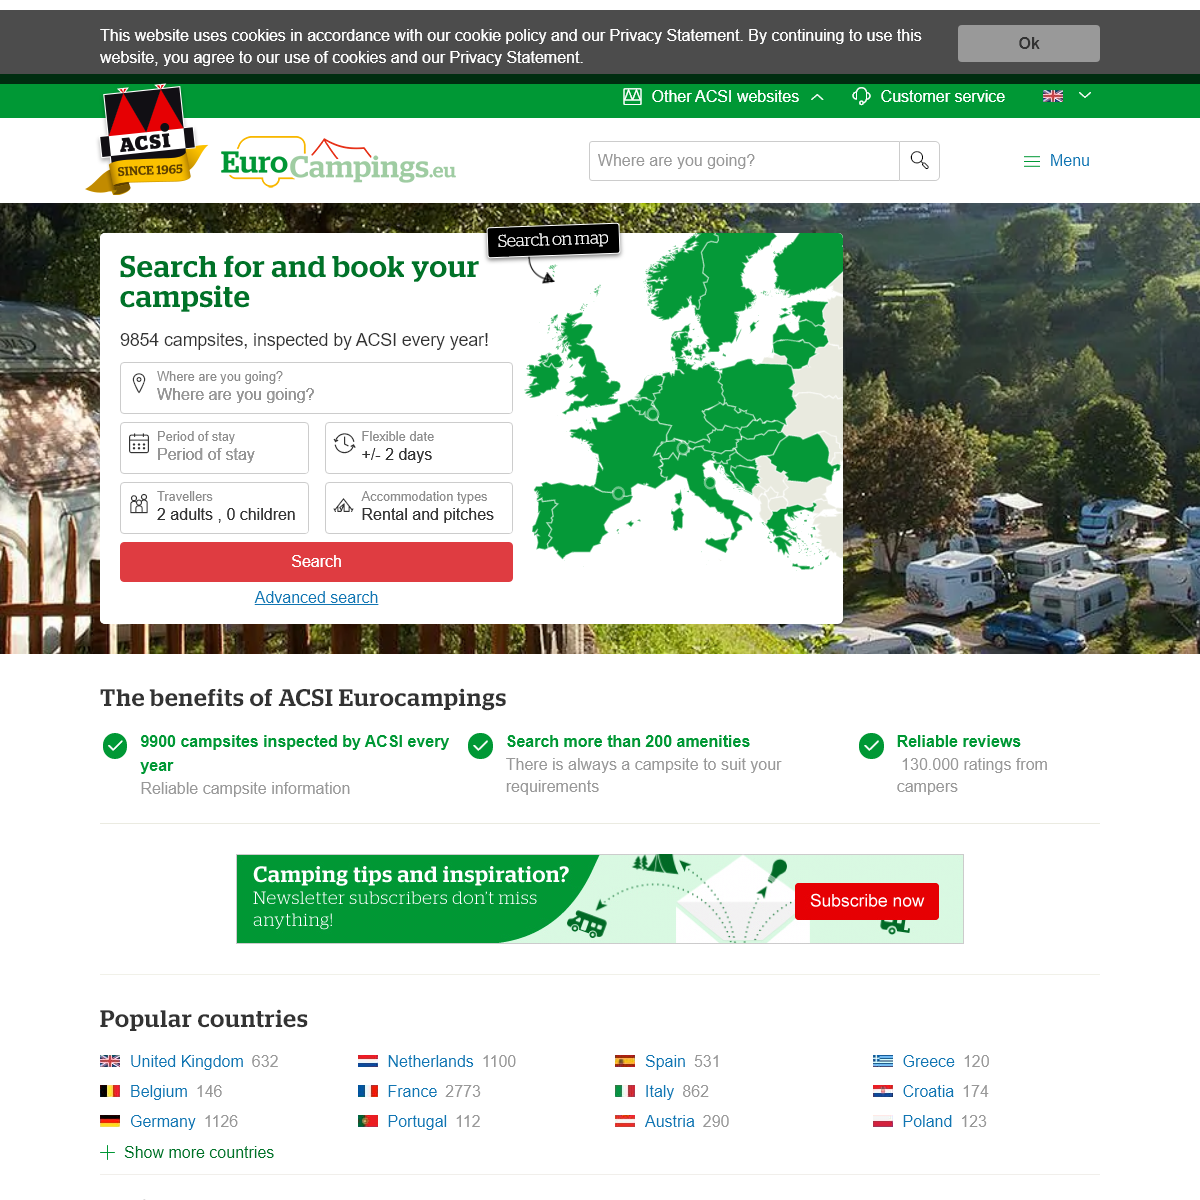 ACSI Eurocampings - Find and book your ideal campsite in Europe!